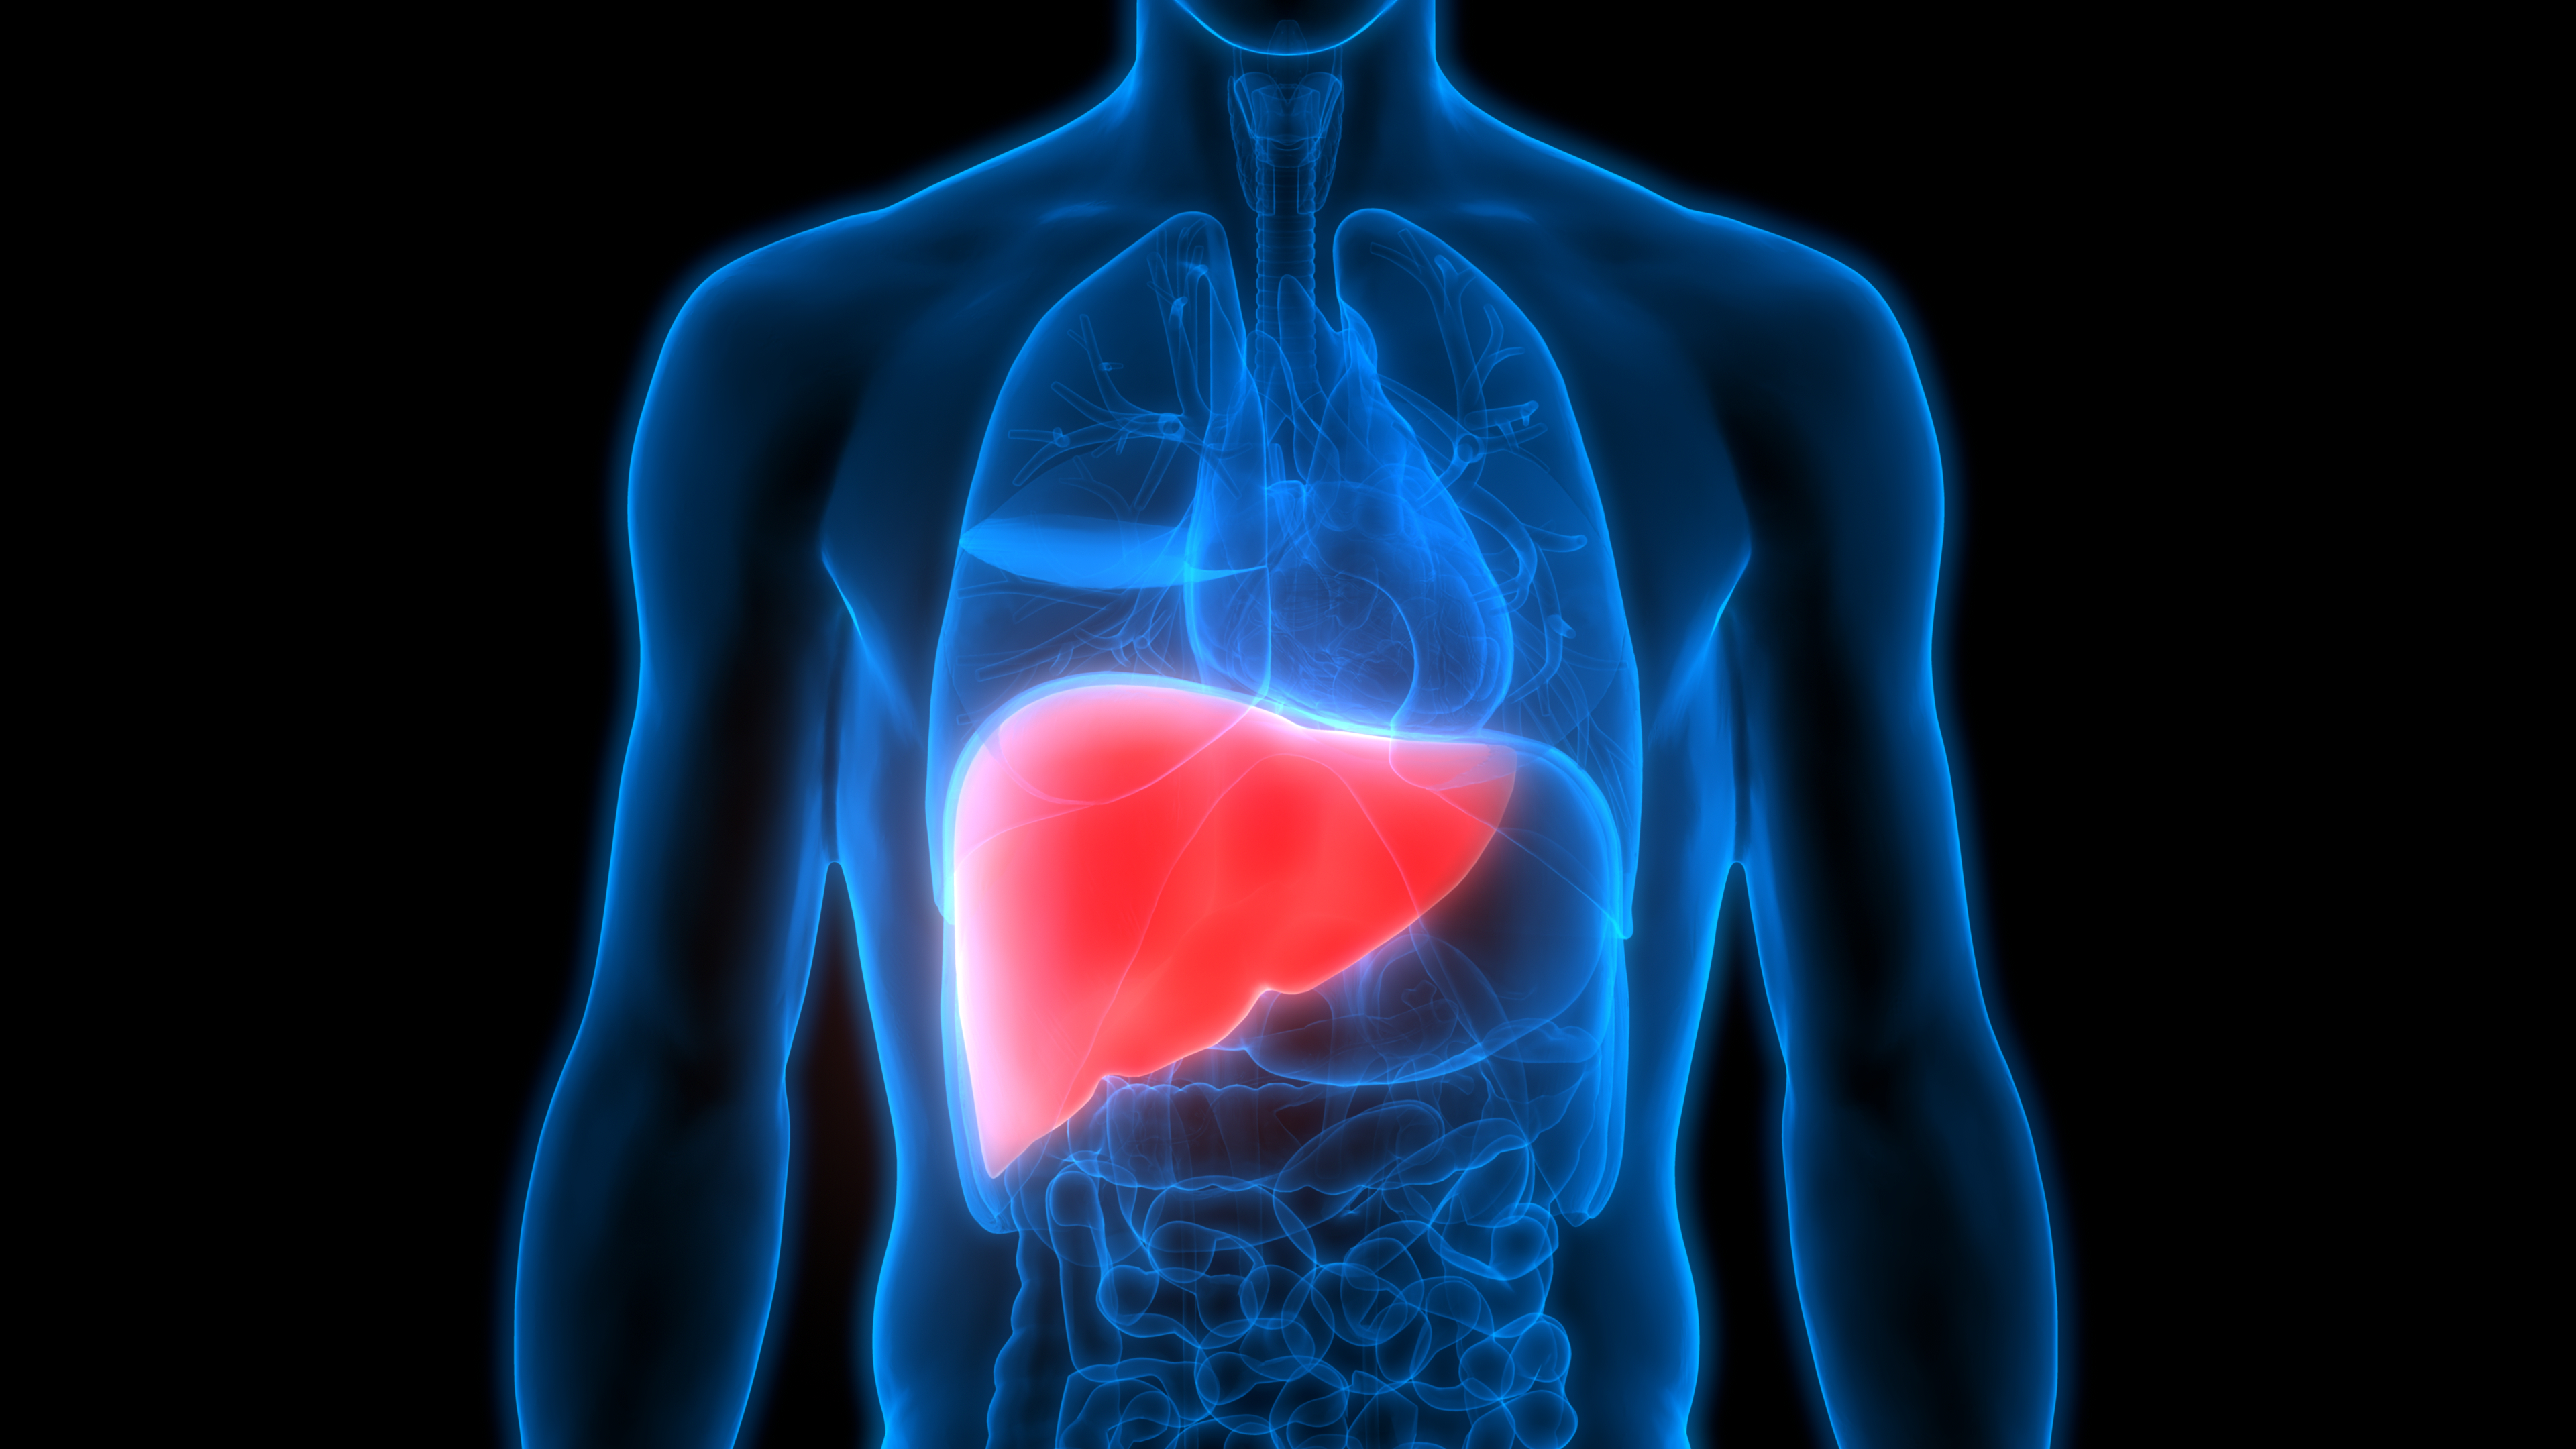 Fatty liver disease: What it is and what to do about it - Harvard ...